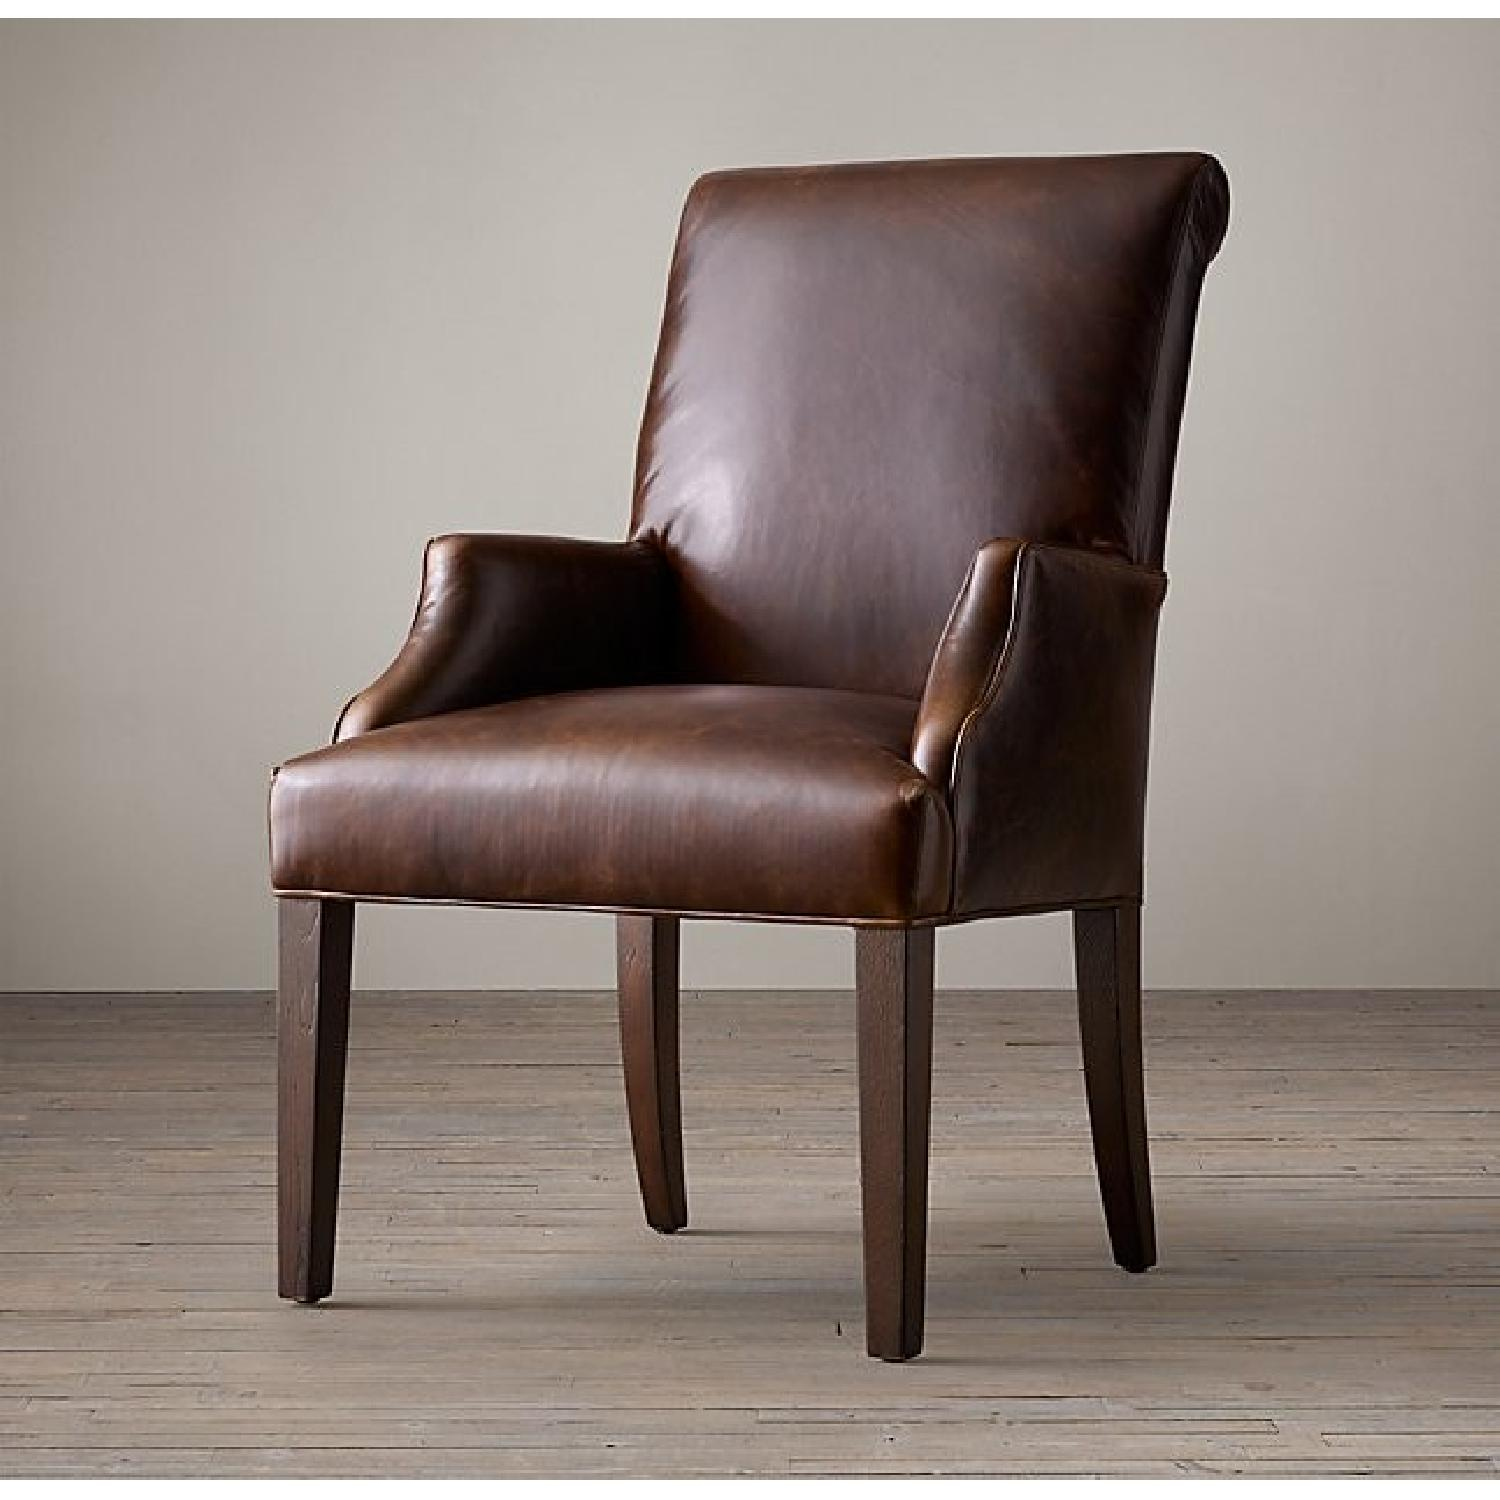 Restoration Hardware Hudson Roll Back Leather Armchair - image-1